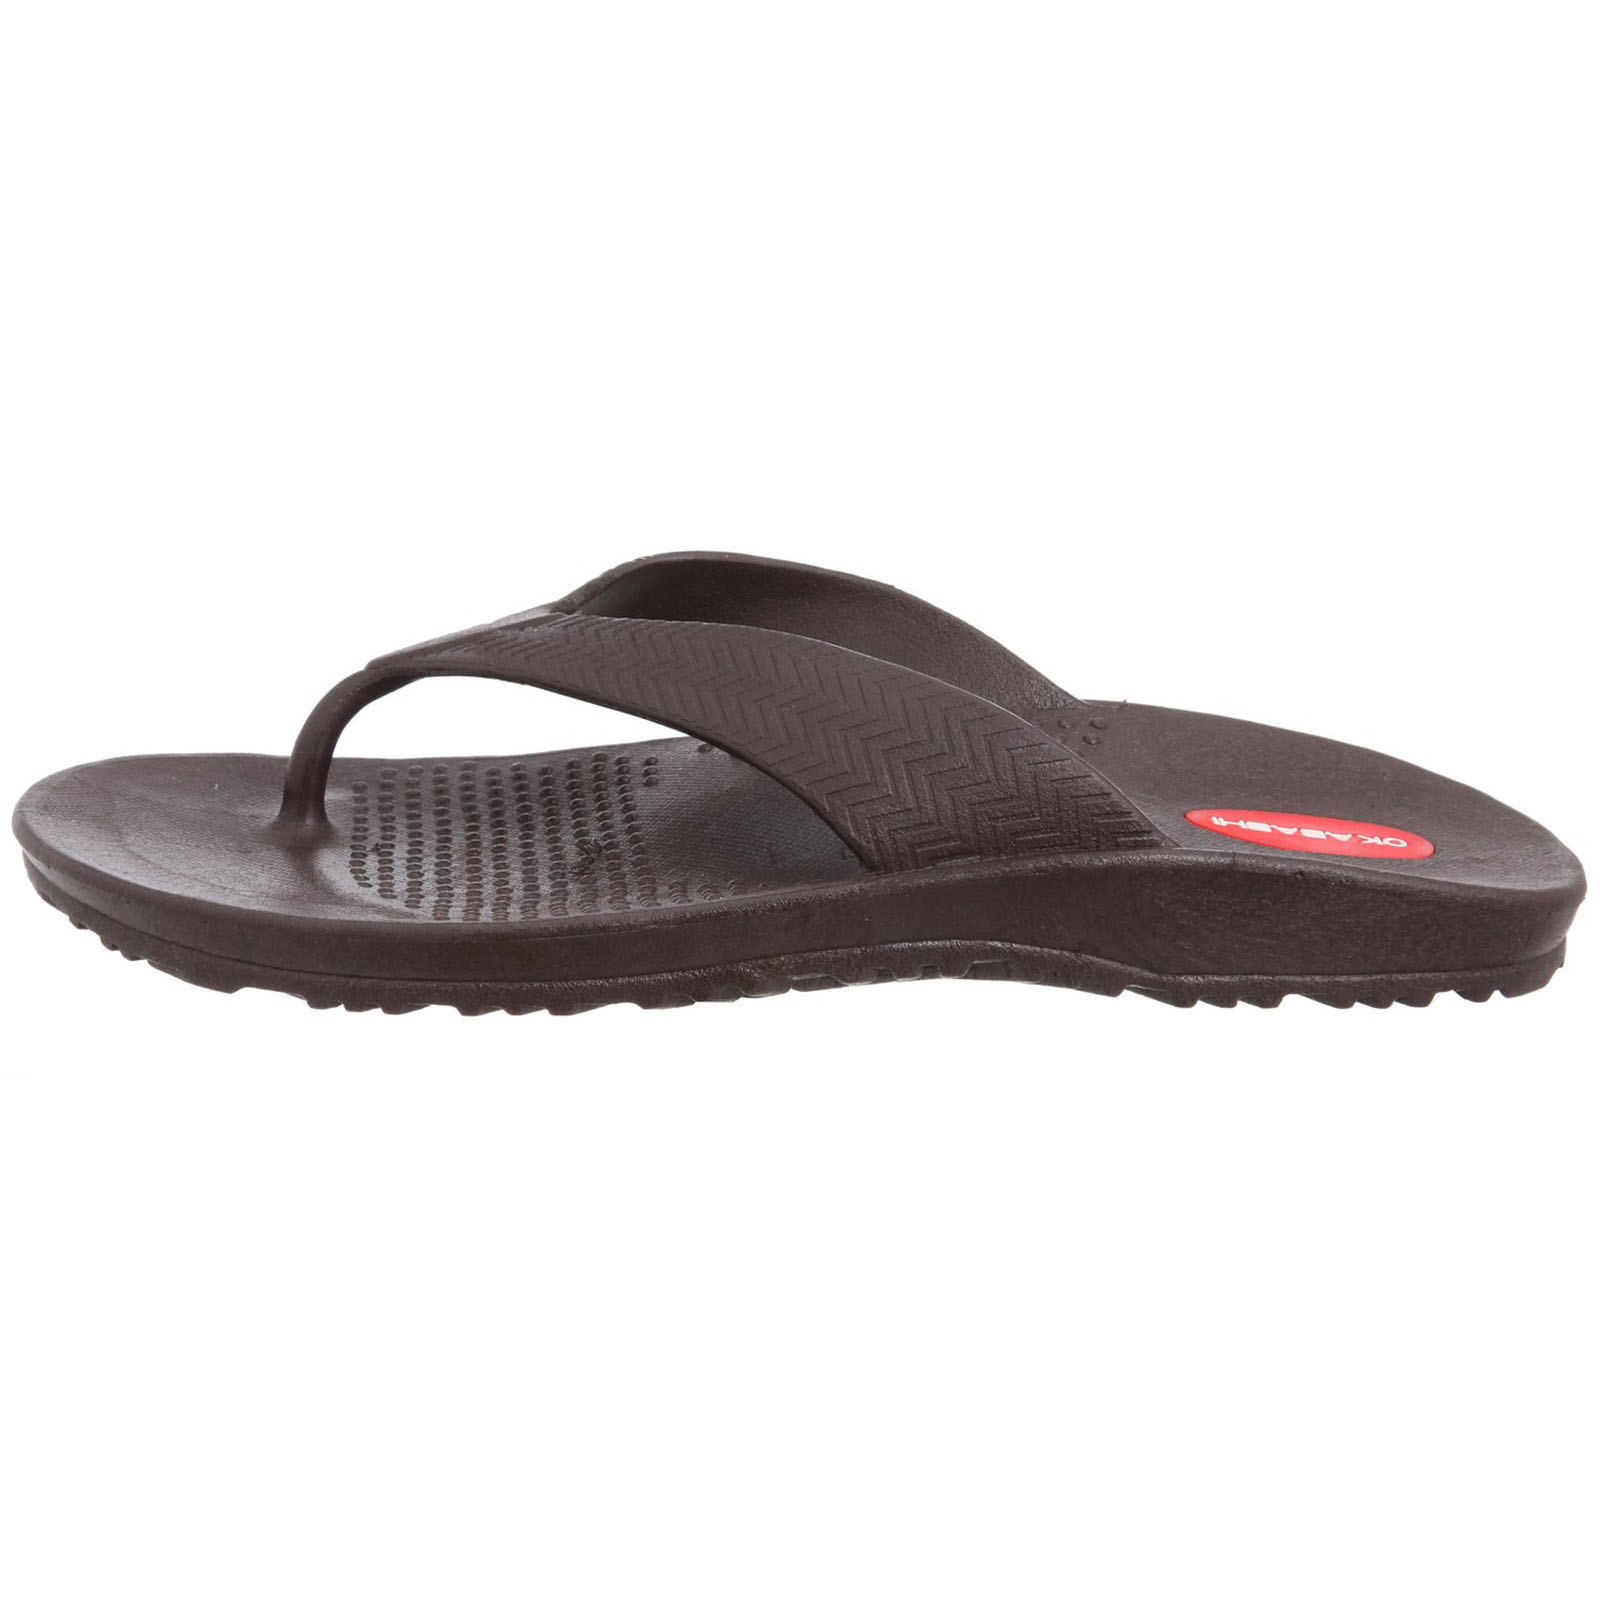 coolnup03t.gq: flip flops men waterproof. From The Community. Amazon Try Prime All these handcrafted flip flops for men with arch support and a Gear One Men's Rubber Sandal Slipper Comfortable Shower Beach Shoe Slip On Flip Flop. by Gear One. $ - $ $ 7 $ 12 99 Prime.